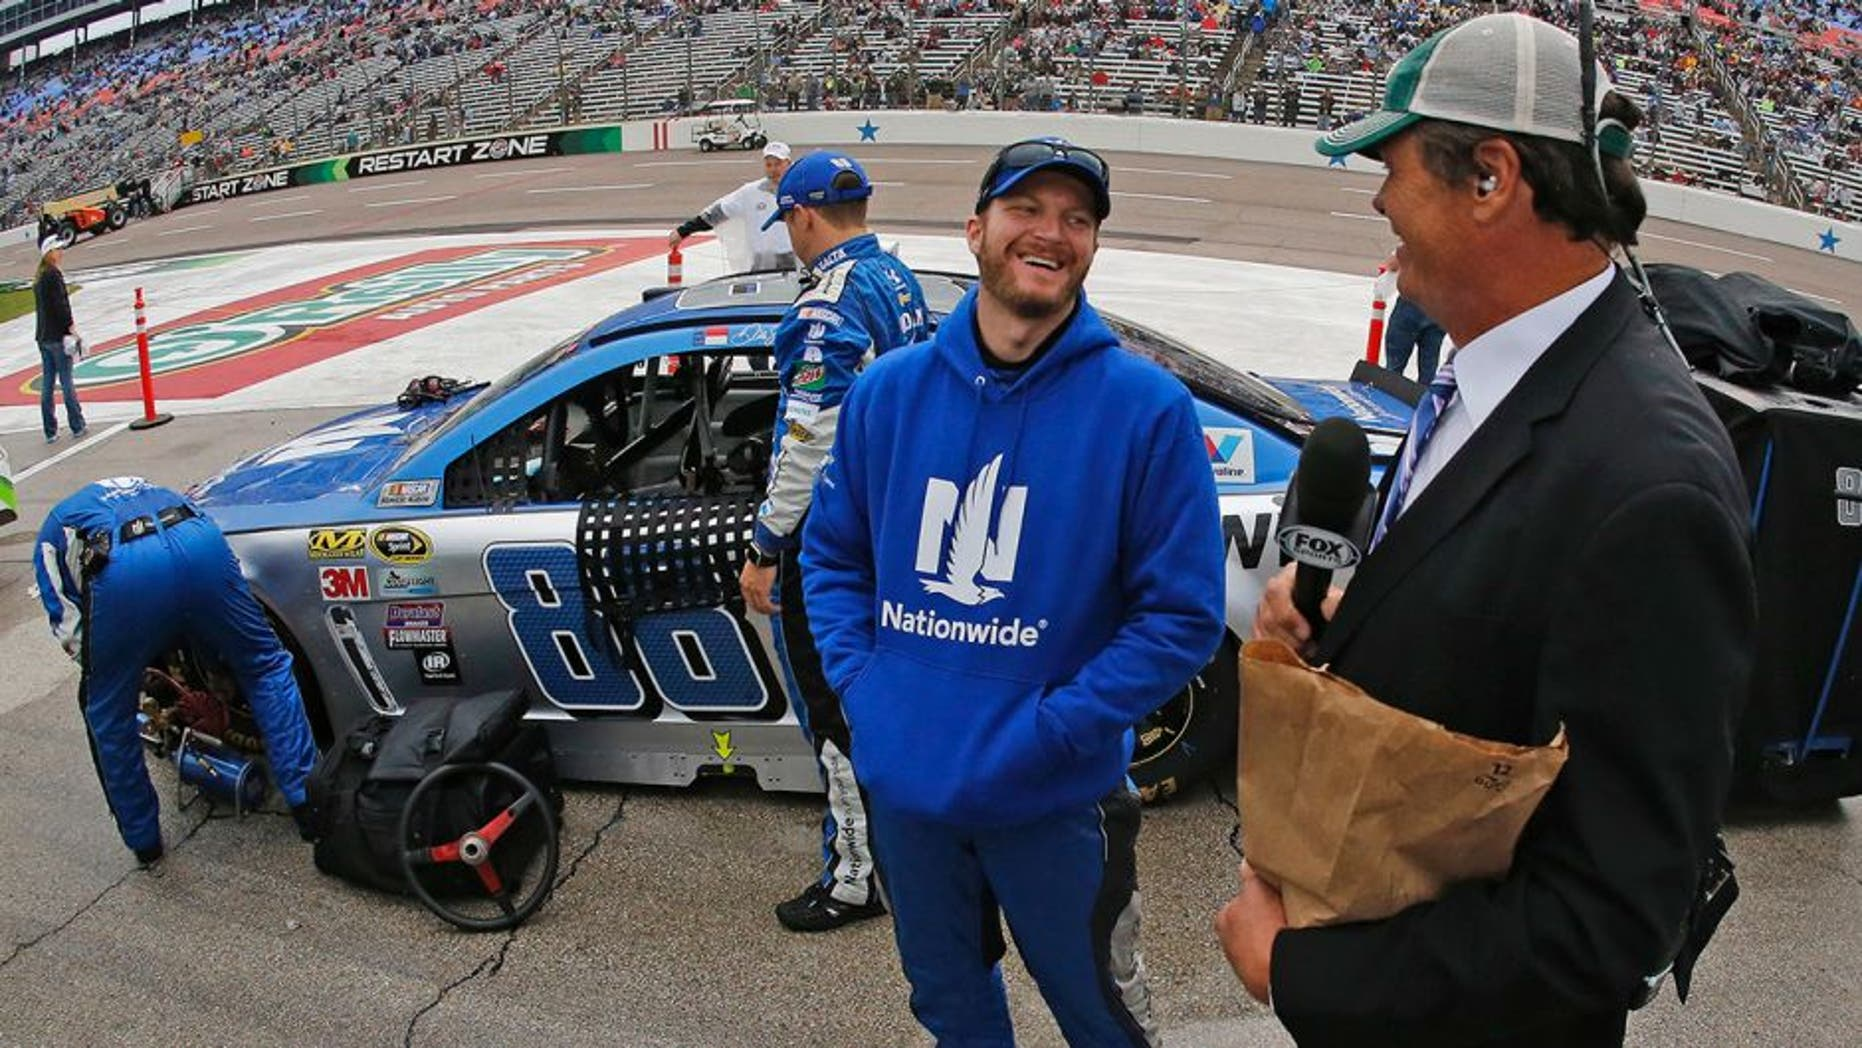 Sprint Cup Series driver Dale Earnhardt Jr. (88) with broadcaster Michael Waltrip on a rain-soaked pit row before the Duck Commander 500 on Saturday, April 9, 2016, at Texas Motor Speedway in Fort Worth, Texas. (Paul Moseley/Fort Worth Star-Telegram/TNS via Getty Images)